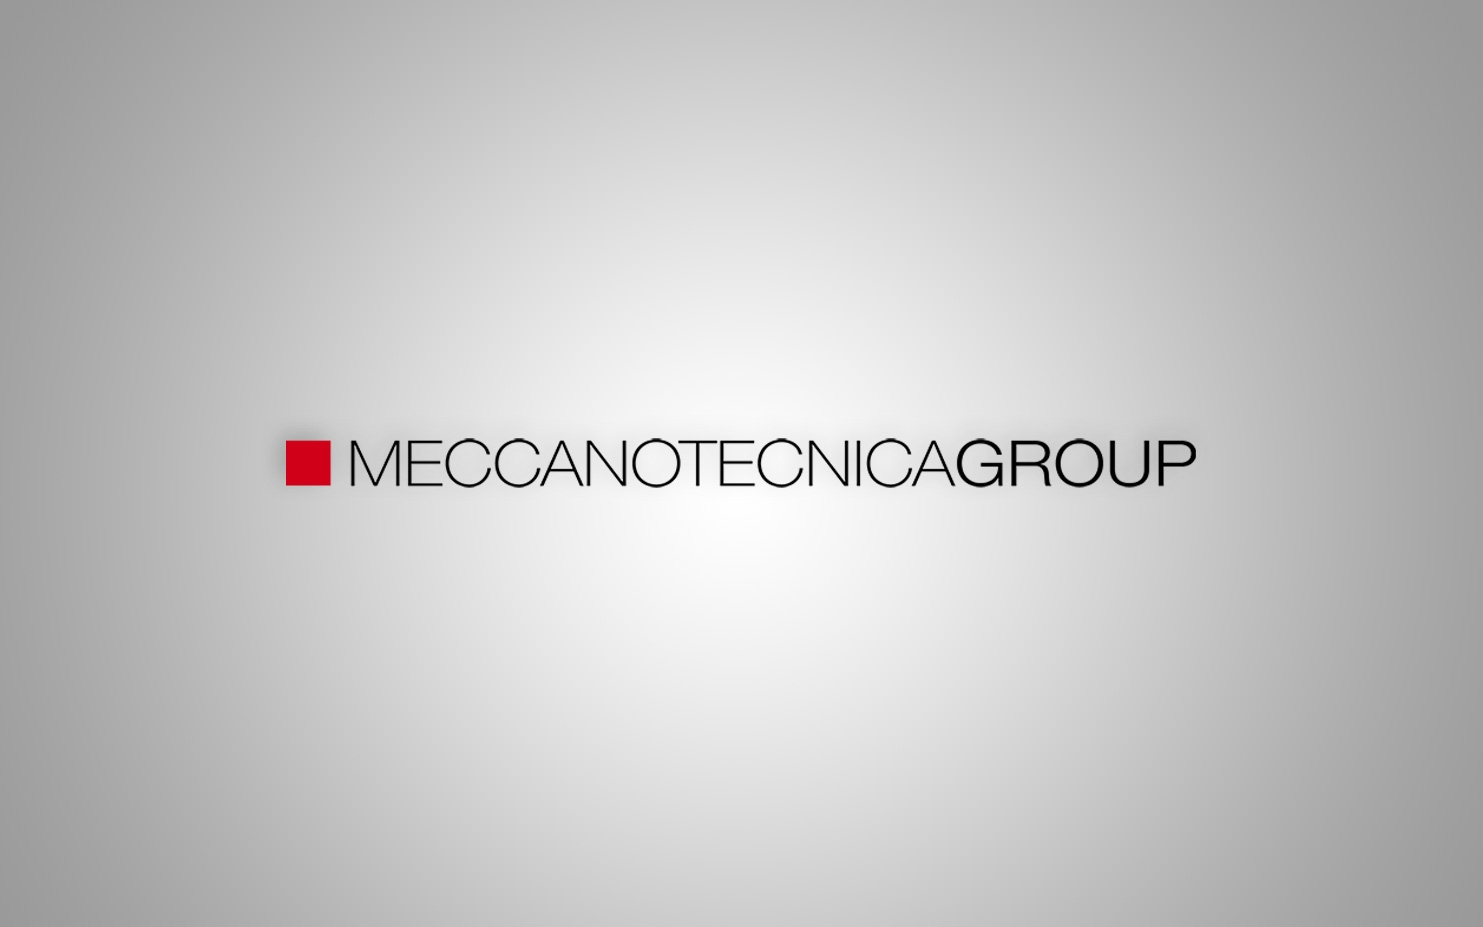 Meccanotecnica extends the temporary suspension of Italian activities until 13 April inclusive